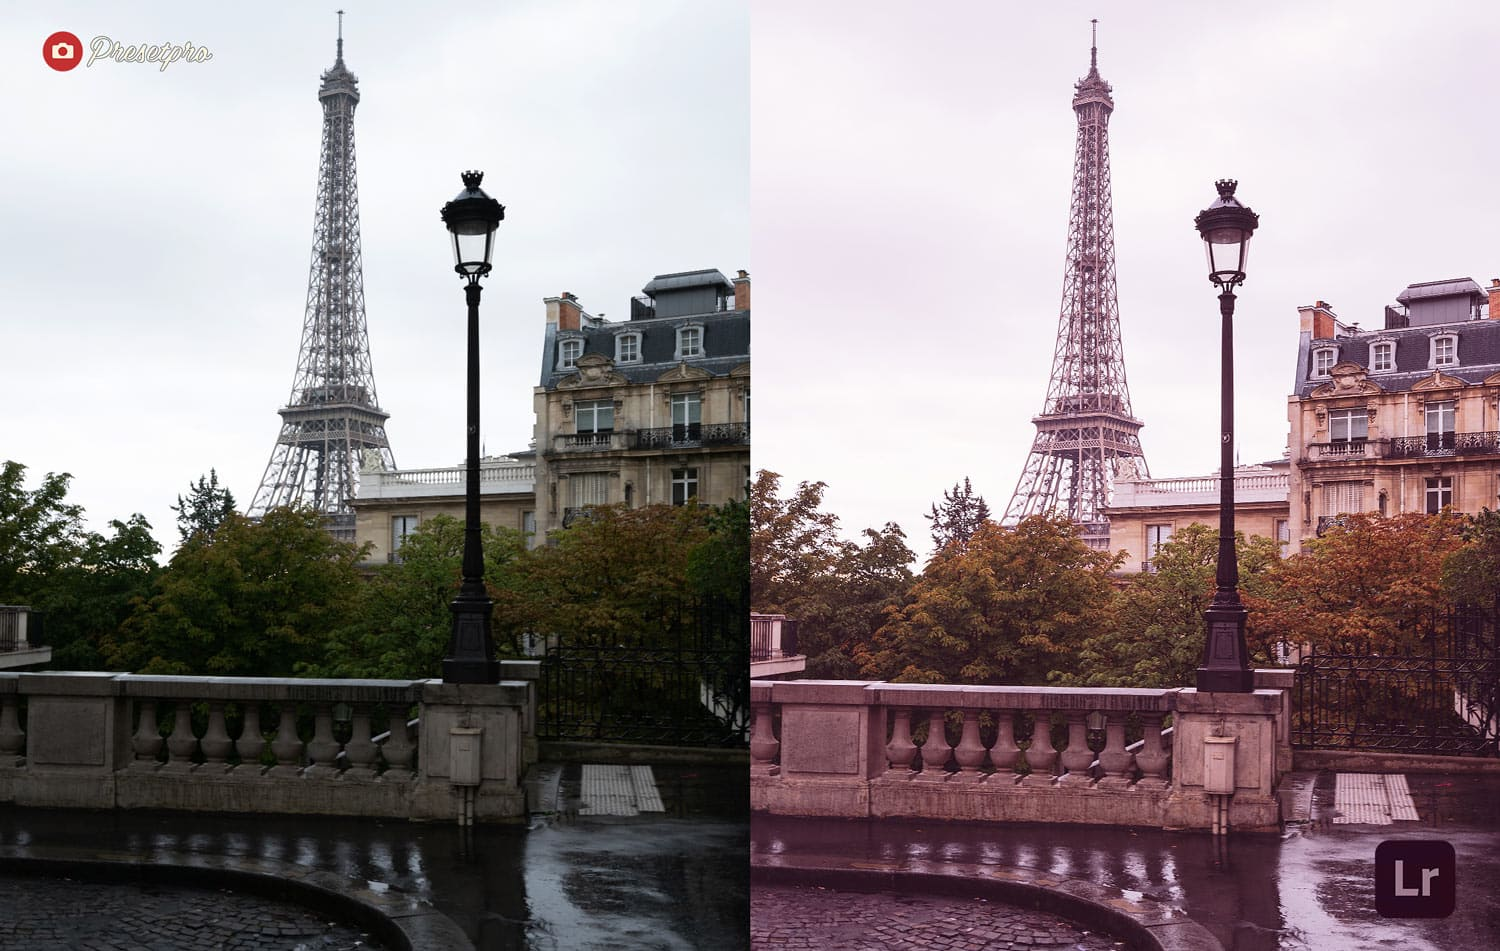 Free-Lightroom-Preset-Parisian-Pink-Before-and-After-Presetpro.com